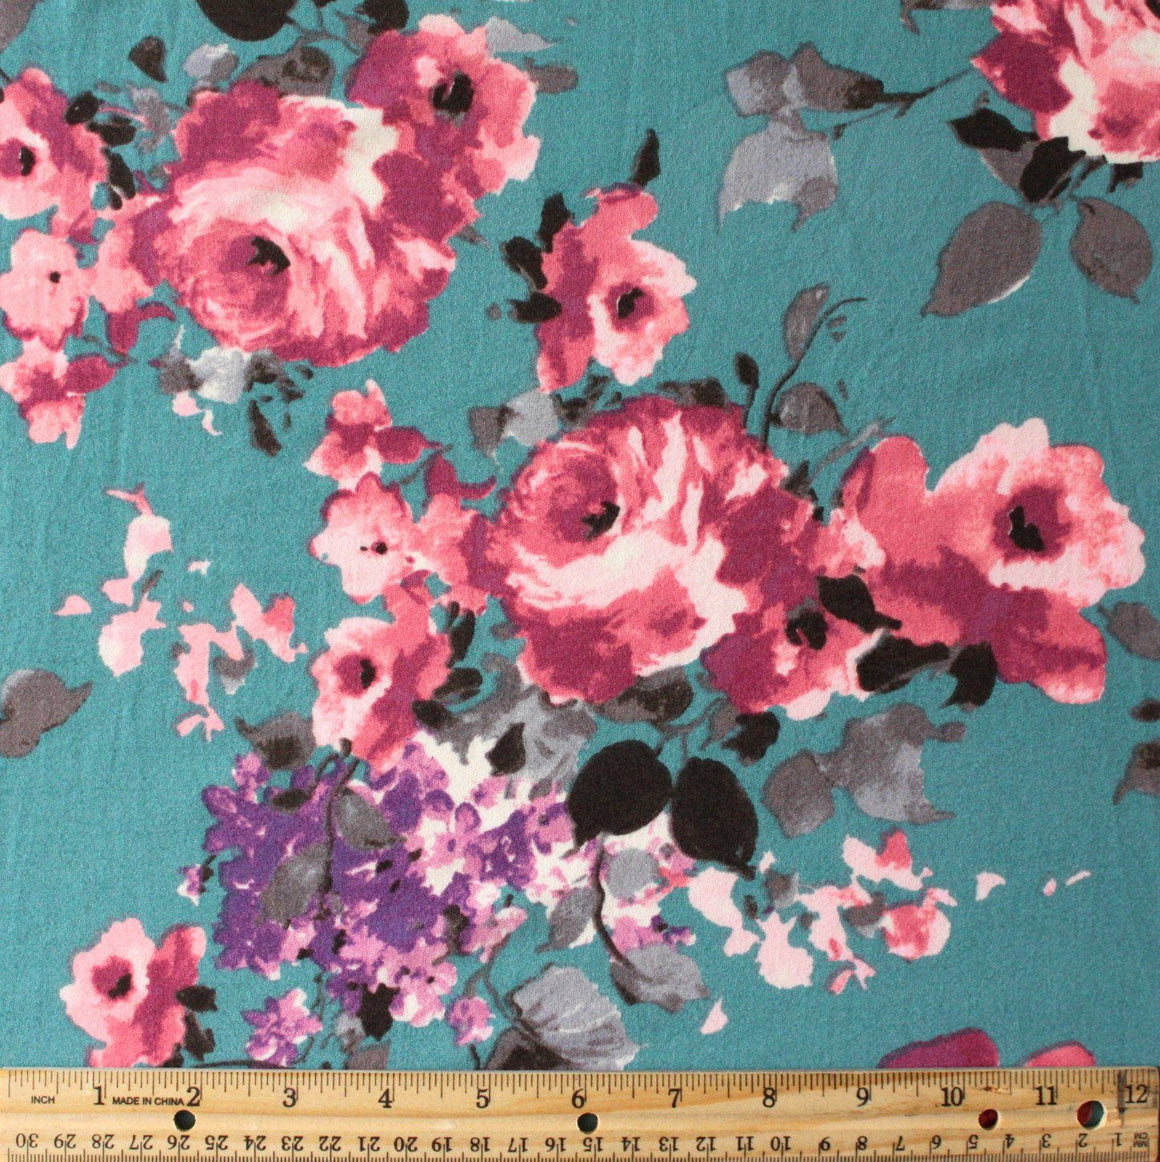 Deep Seafoam Magenta Purple and Grey Floral Double Brushed Poly Spandex Knit, 1 yard